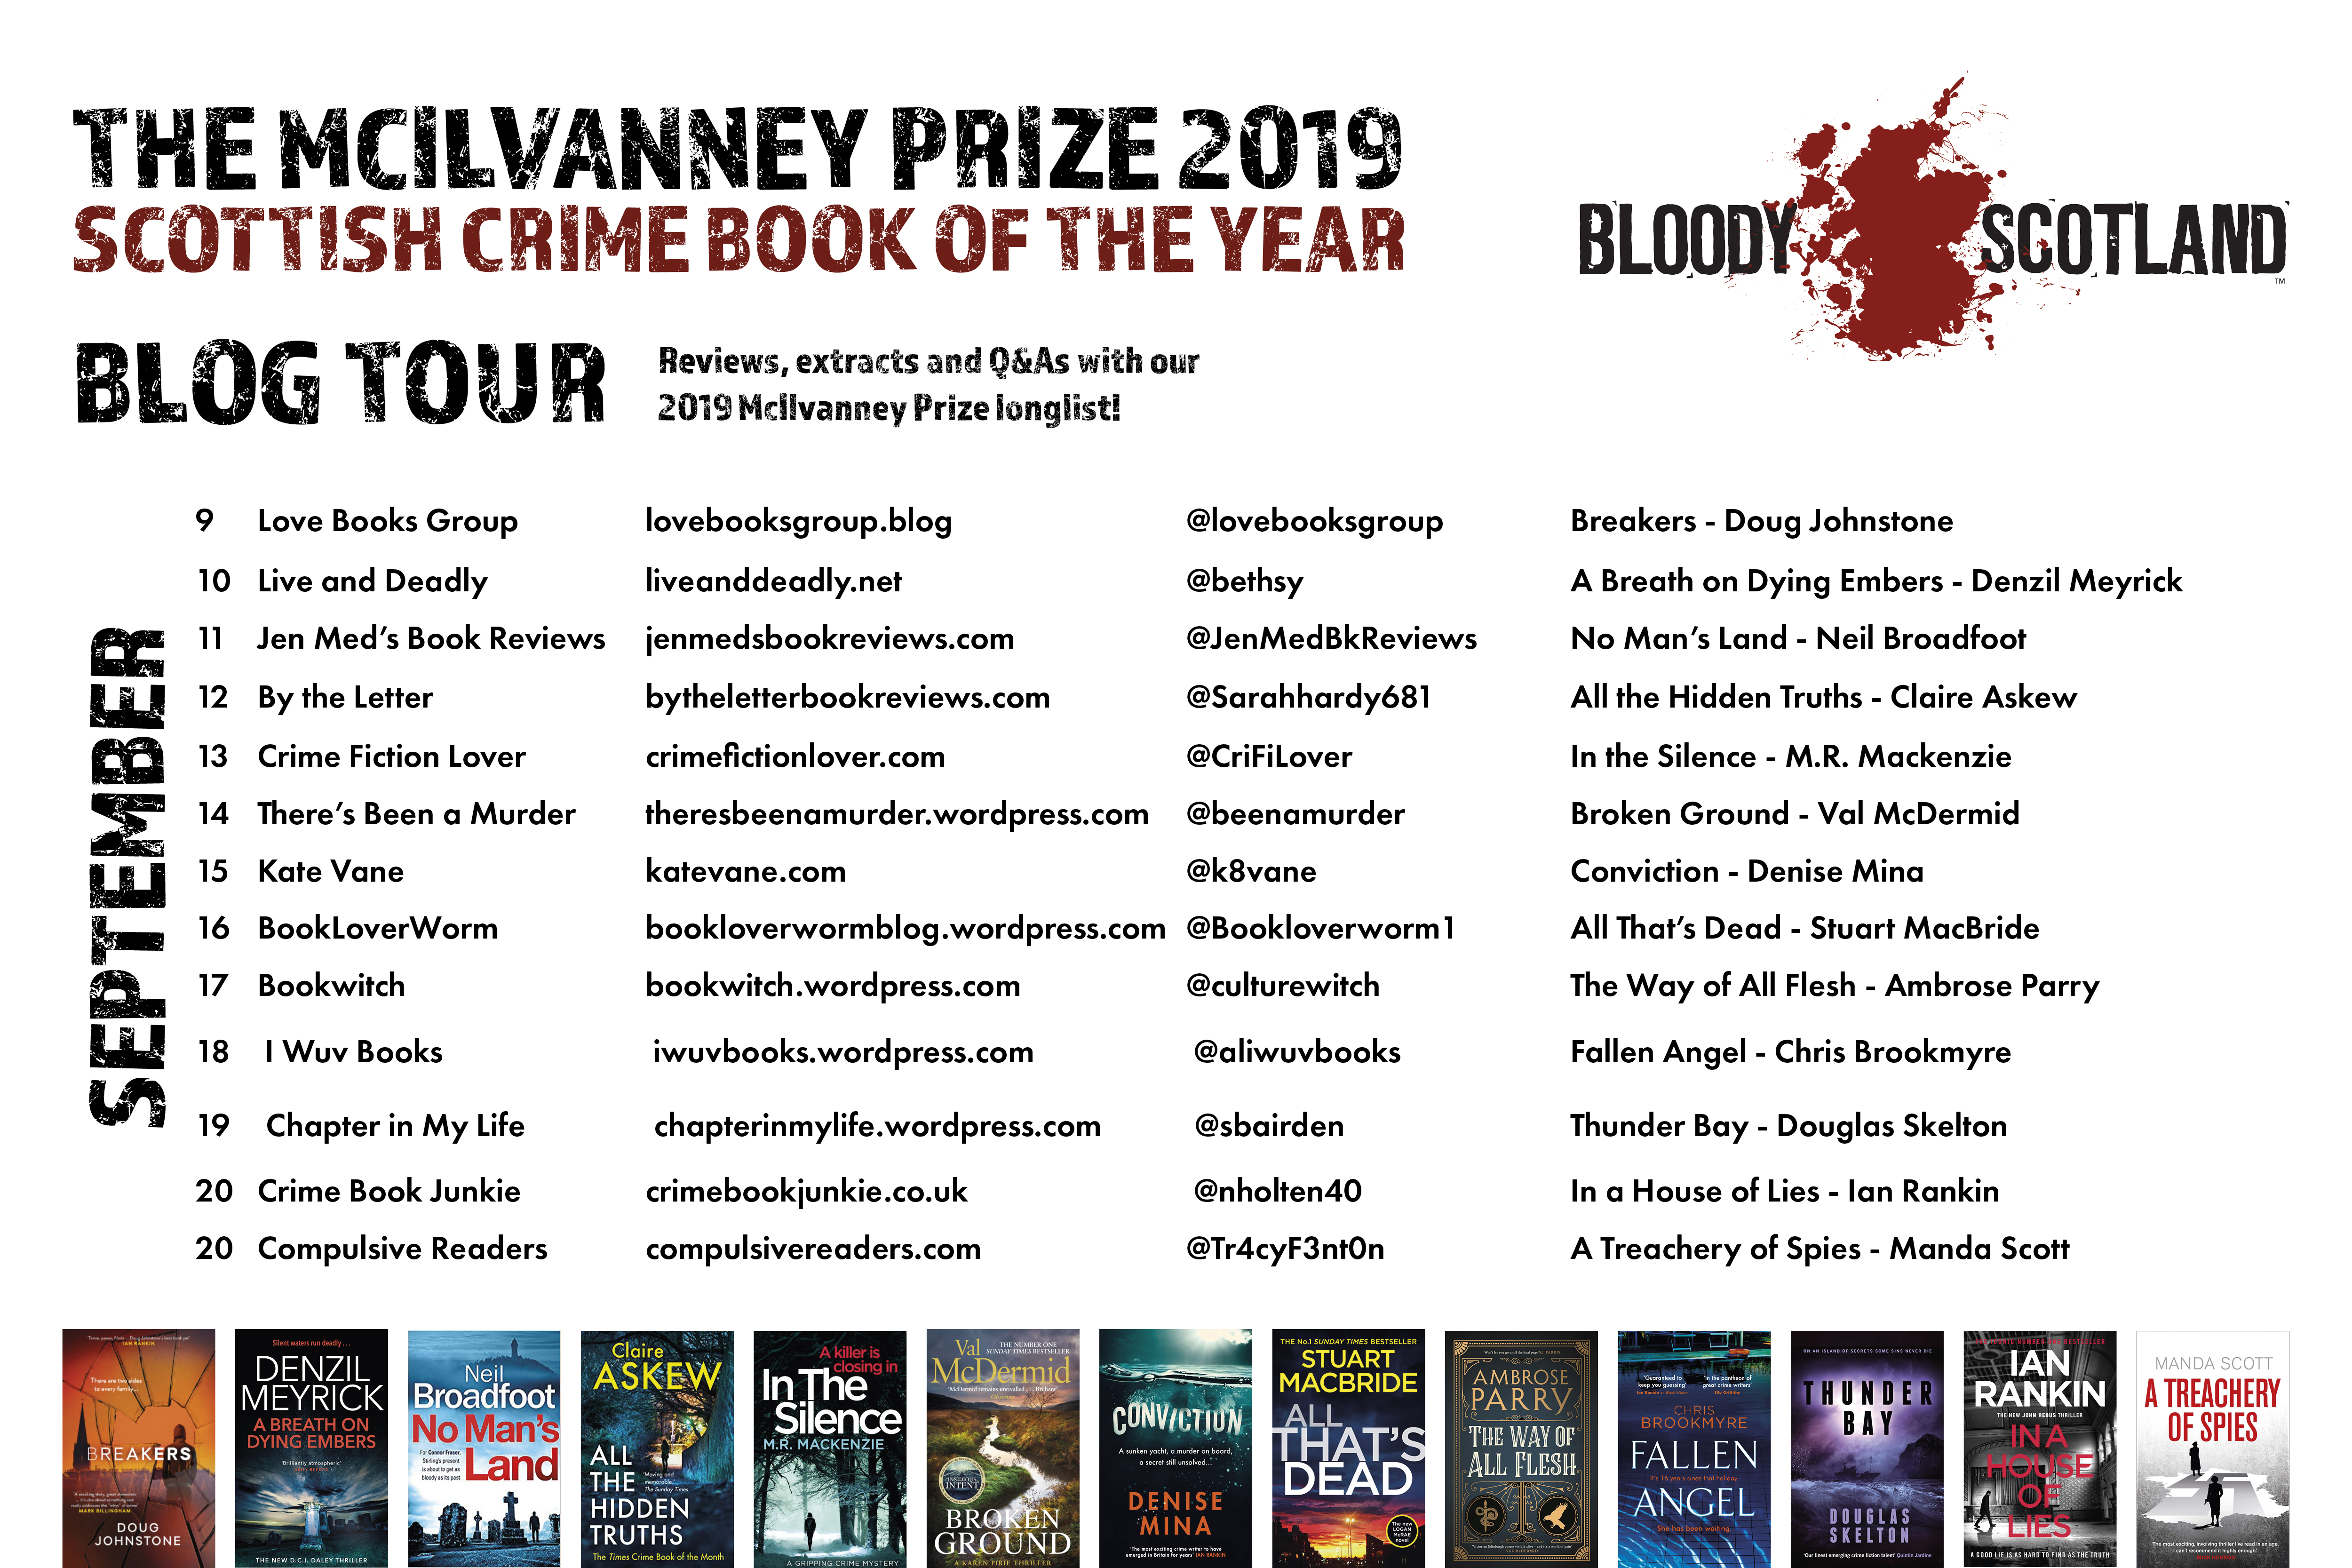 BloodyScotland-blog-tour.jpg